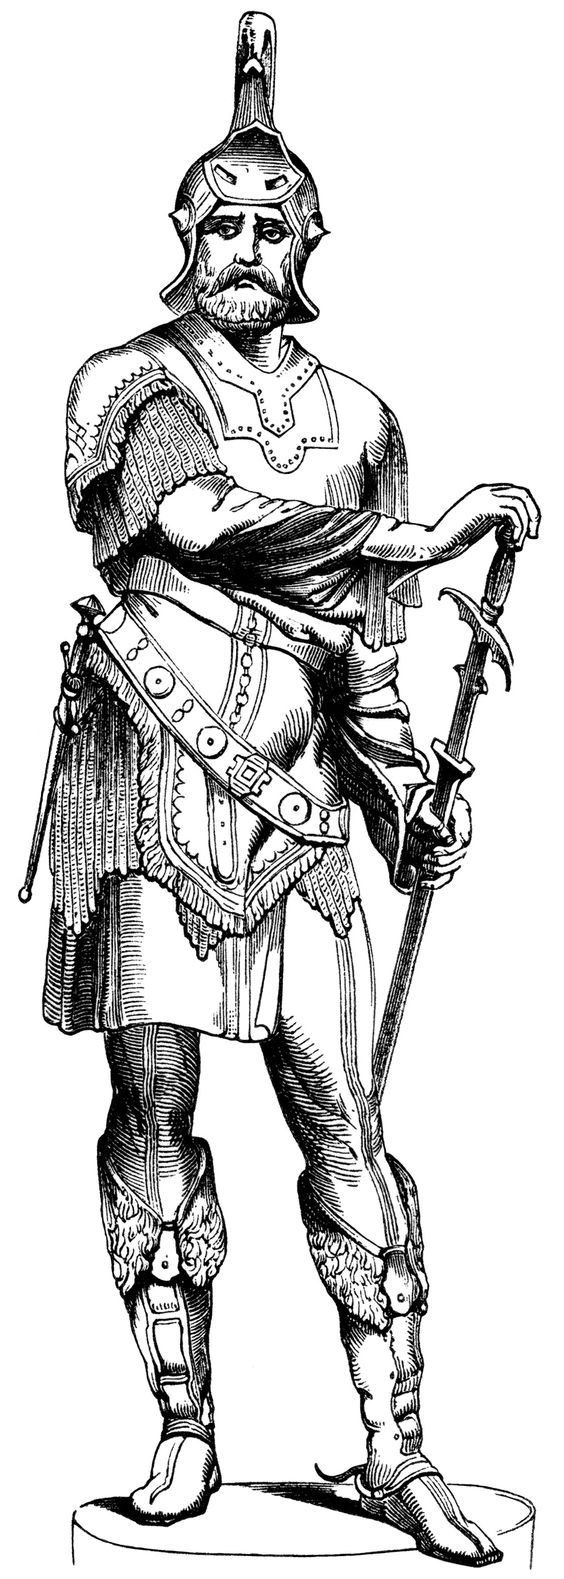 Roman Warriors clipart black and white Soldier graphics art illustration clip